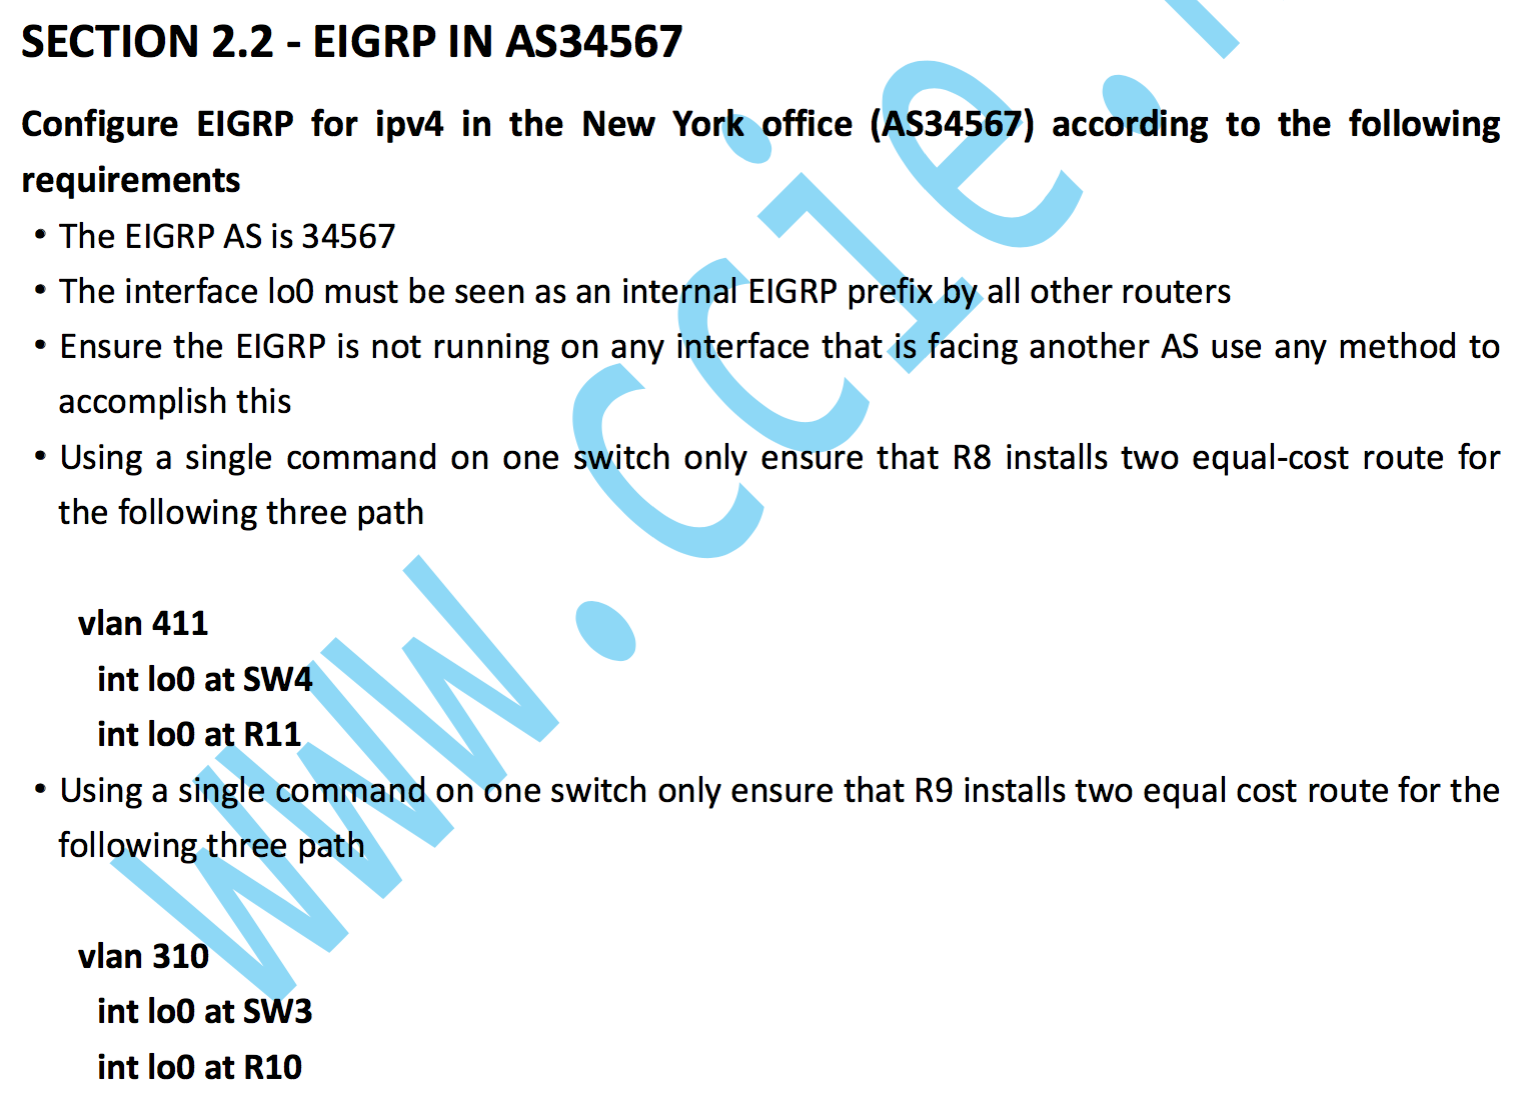 CCIE RS V5考试LAB1实验详解:Section 2.2 EIGRP in AS34567